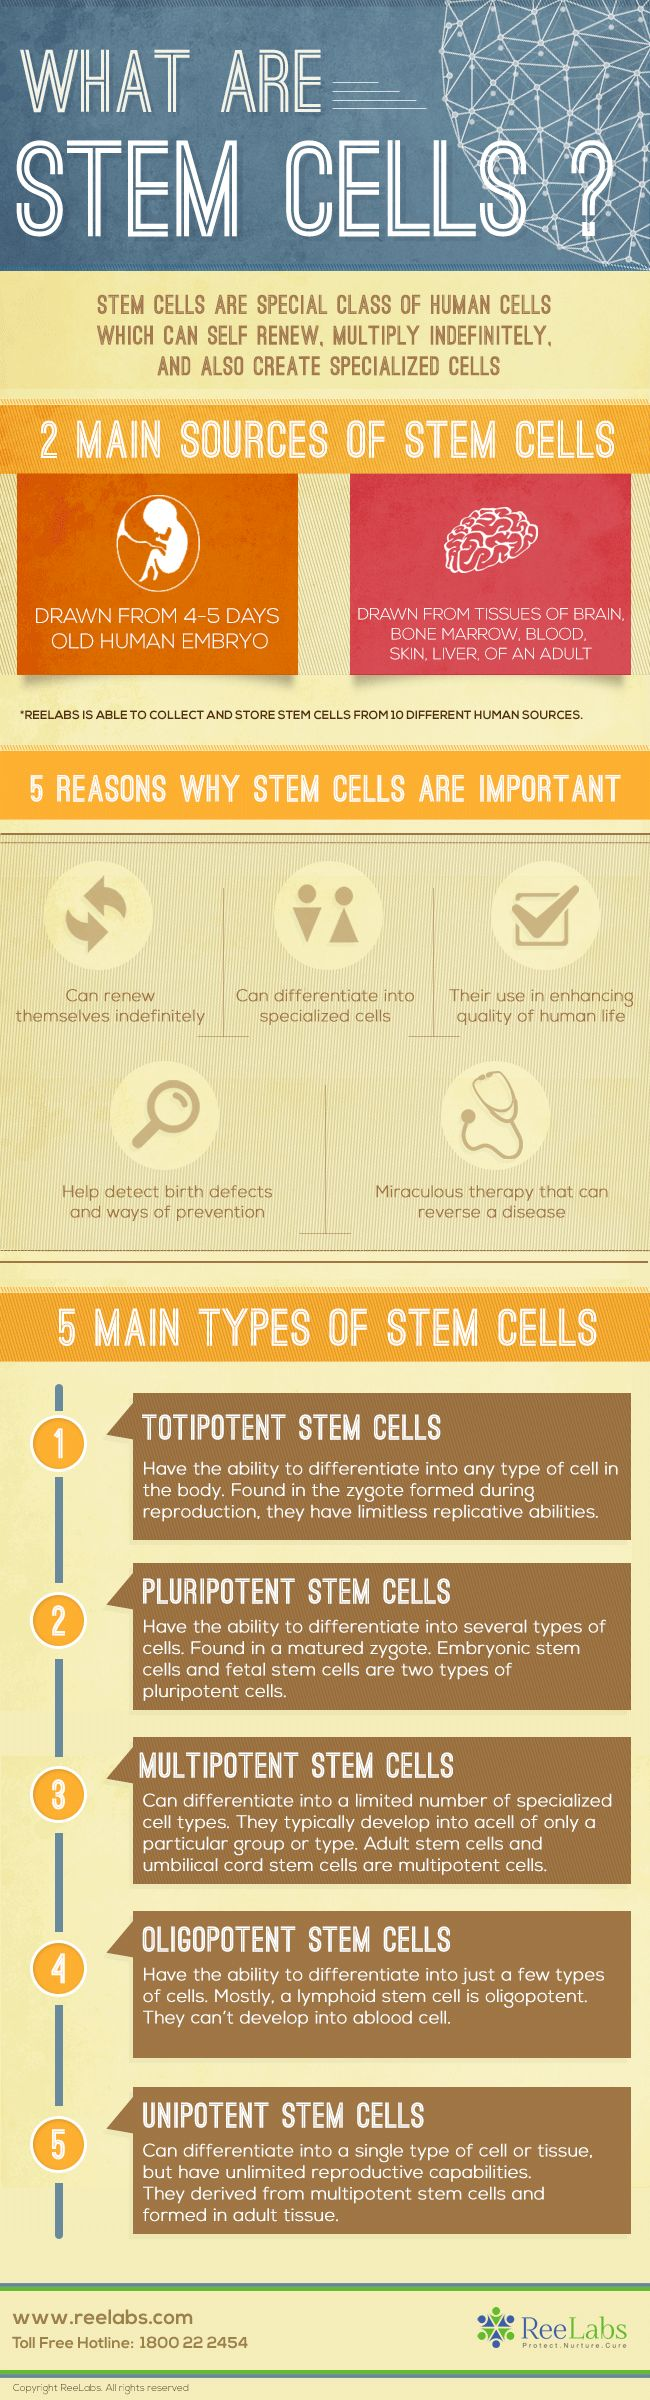 What Are Stem Cells #infographic #Health stem cell growht factors in Luminesce) on the Stem Cell Lift ~ a whole new level! http://www.youthfulfiftyfive.jeunesseglobal.com/